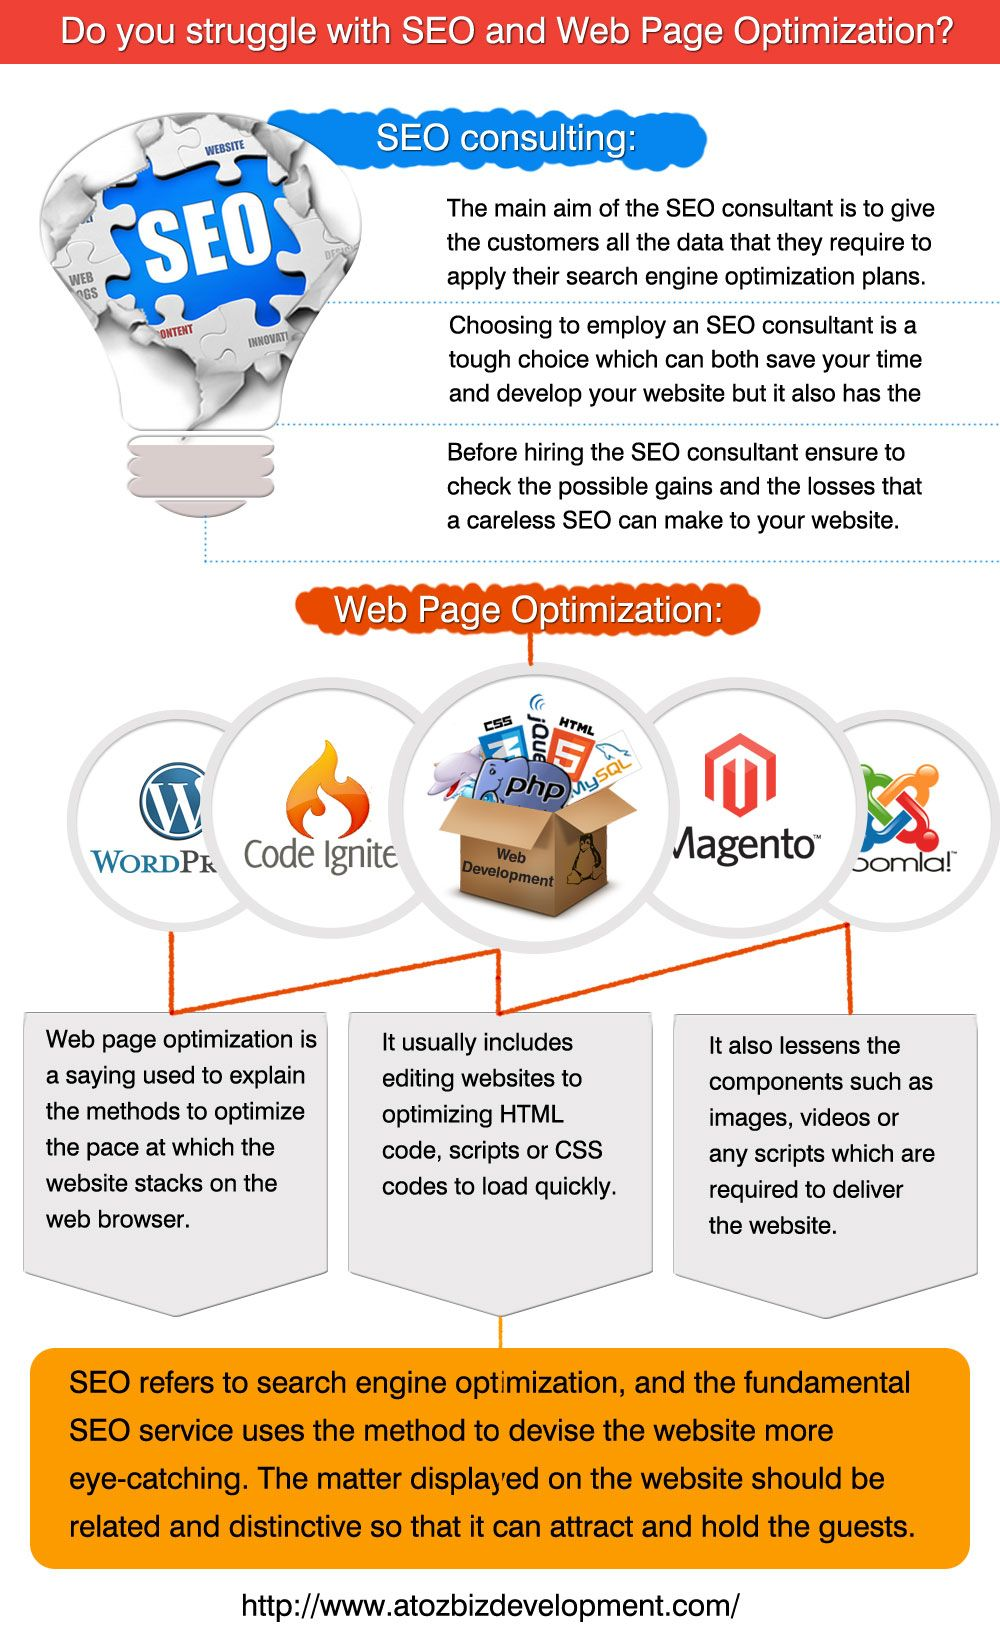 Contact a to z for professional seo services we will help